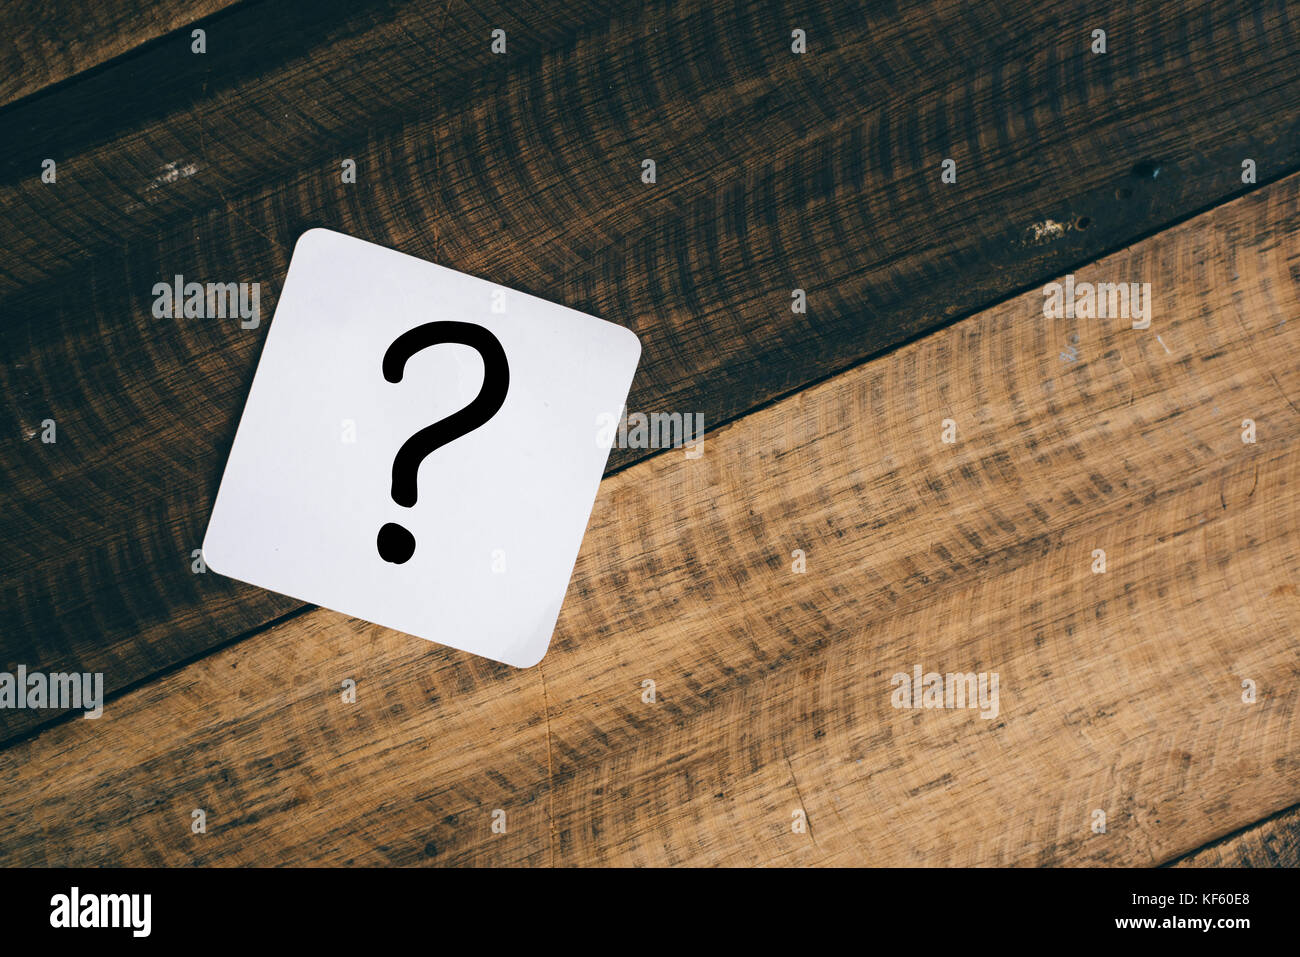 question mark on white note on a wooden background - Stock Image